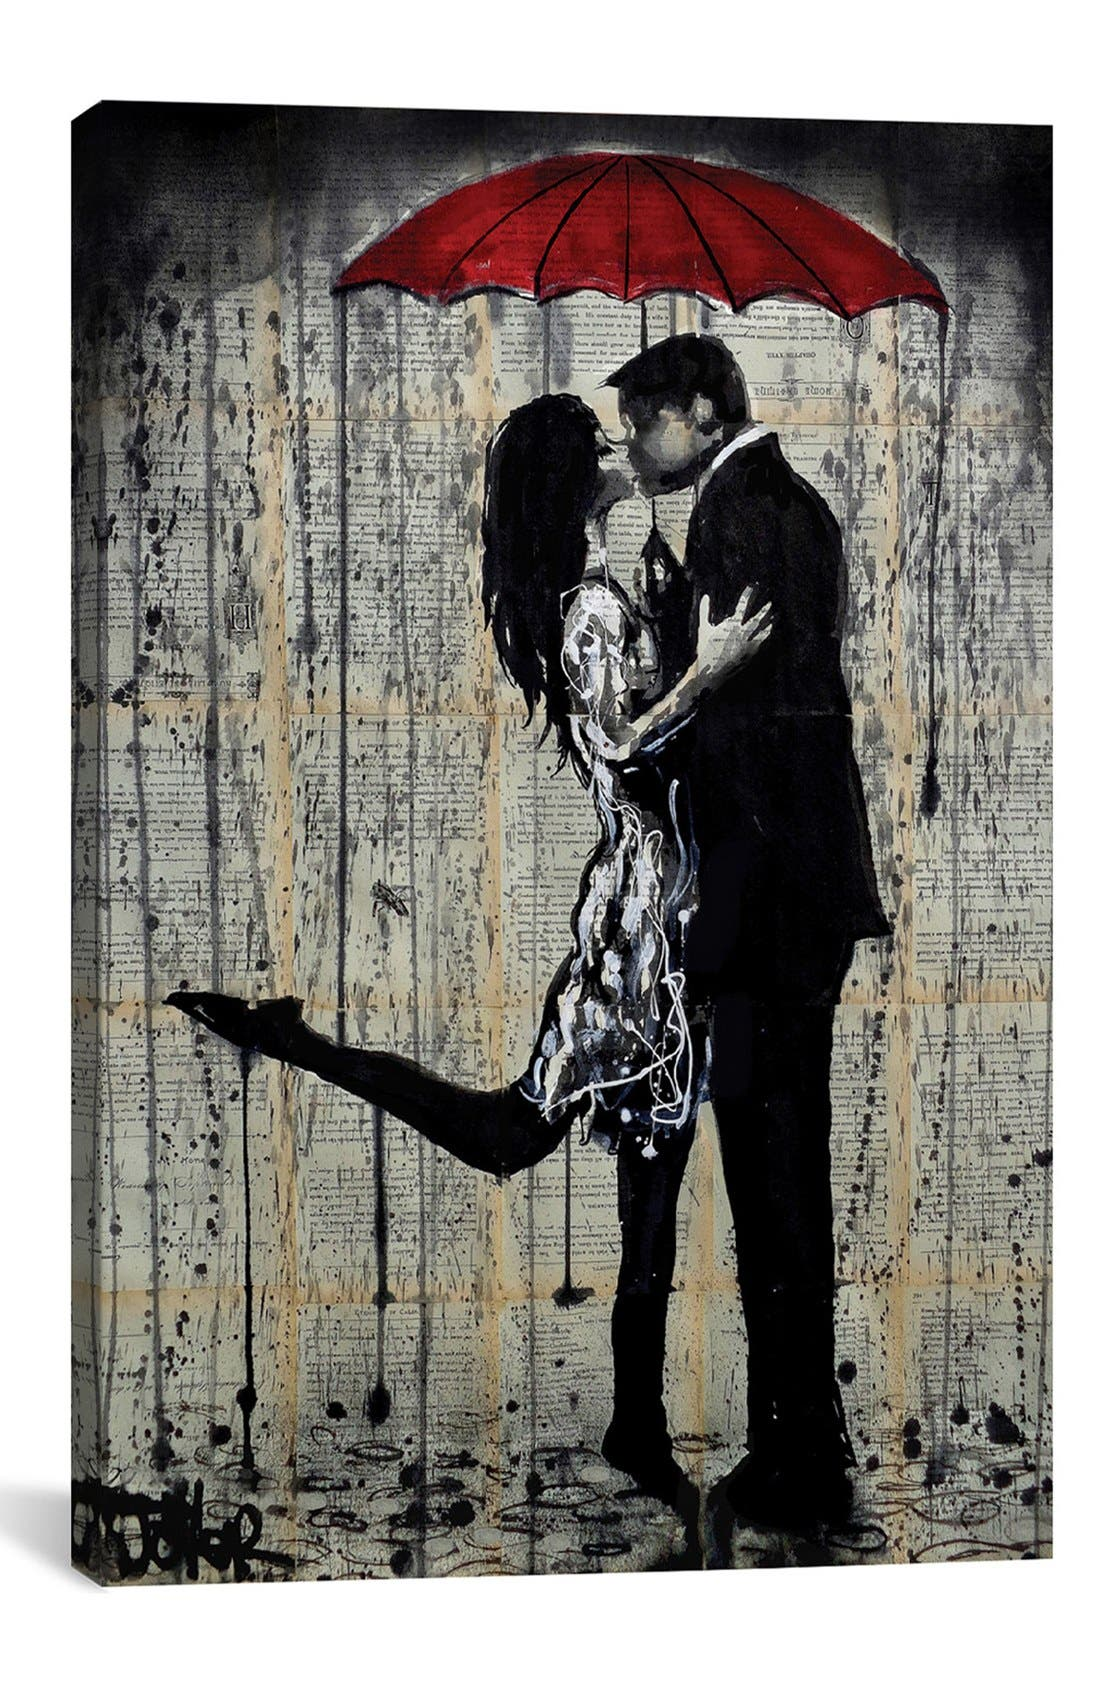 Alternate Image 1 Selected - iCanvas 'Rainy Hearts' Giclée Print Canvas Art